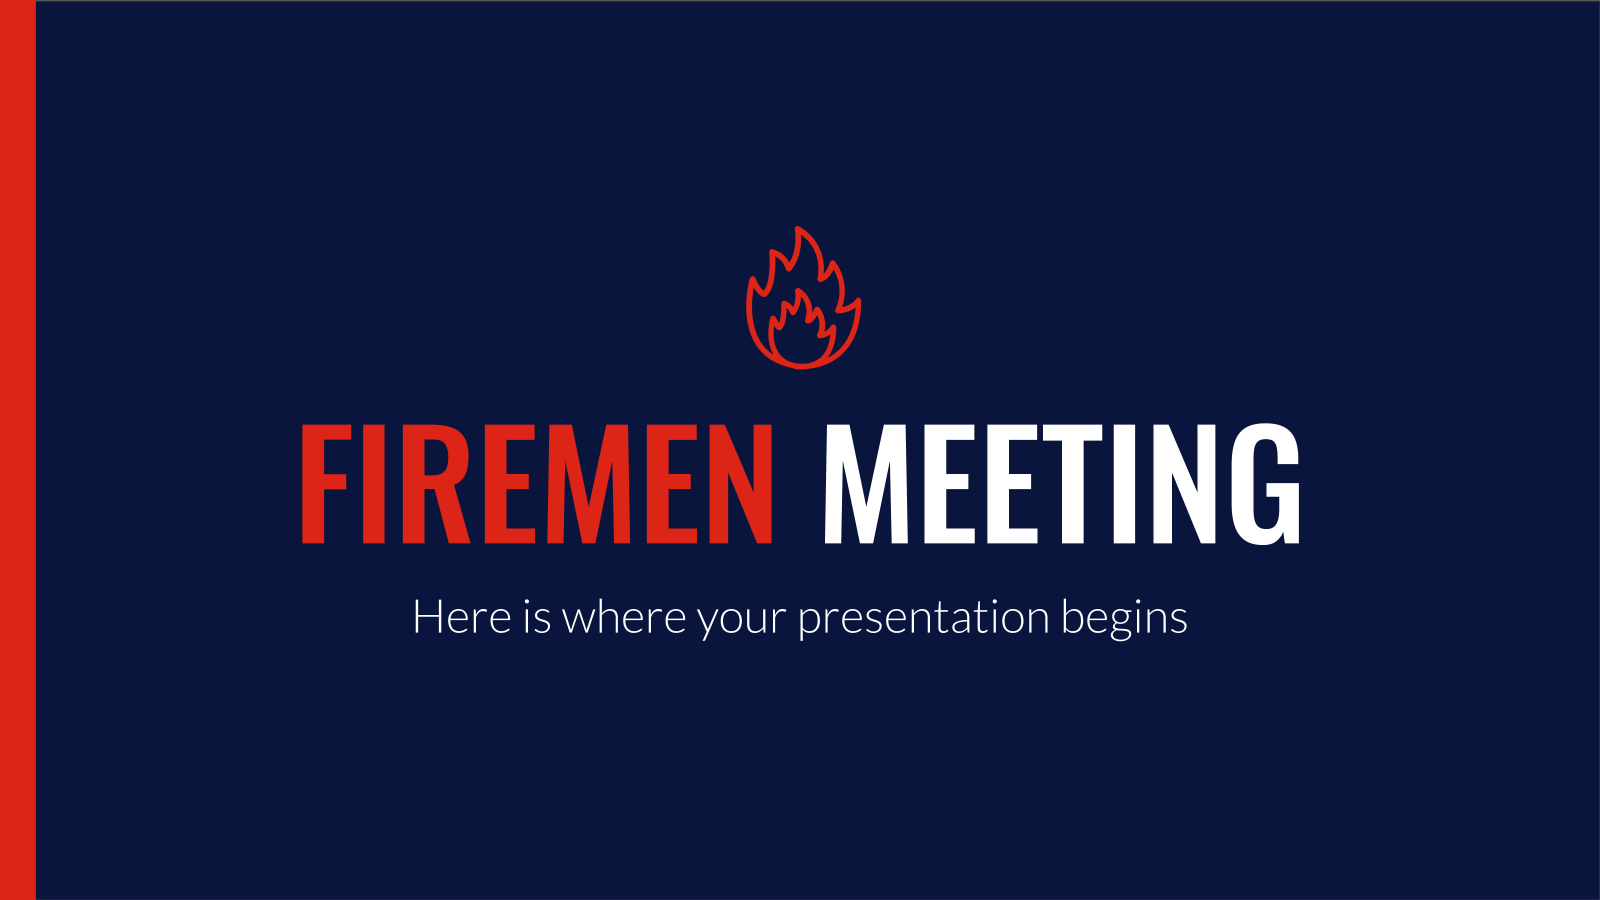 Firemen Meeting presentation template